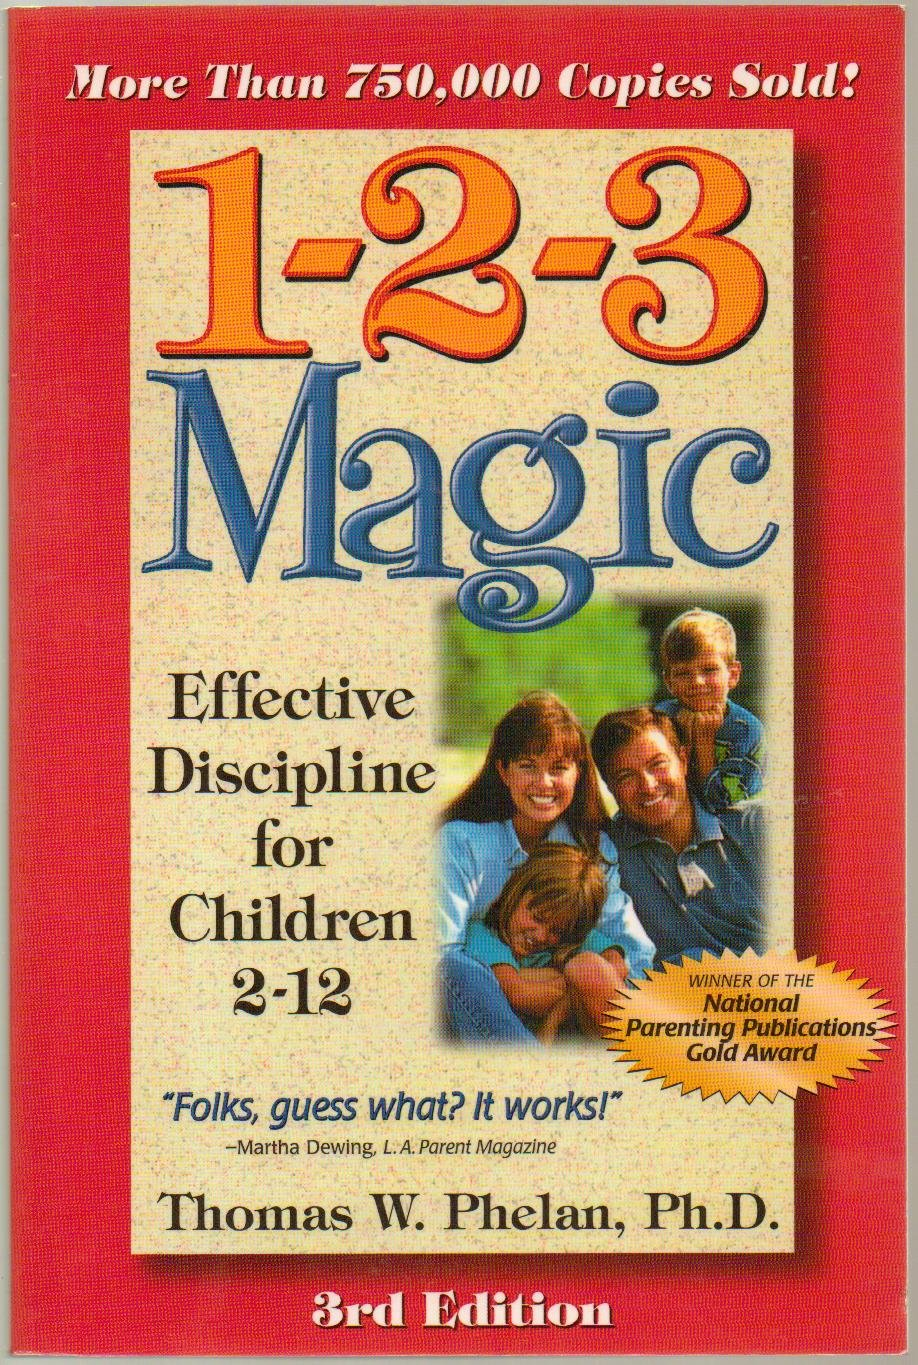 1 2 3 Magic, 1-2-3 Magic - Effective Discipline for Children Ages 2-12 - 3rd Edition - Controlling Obnoxious Behavior, Encouraging Good Behavior, Strenthening Your Relationship - Paperback - THIRD Edition, 2nd Printing 2003 ebook